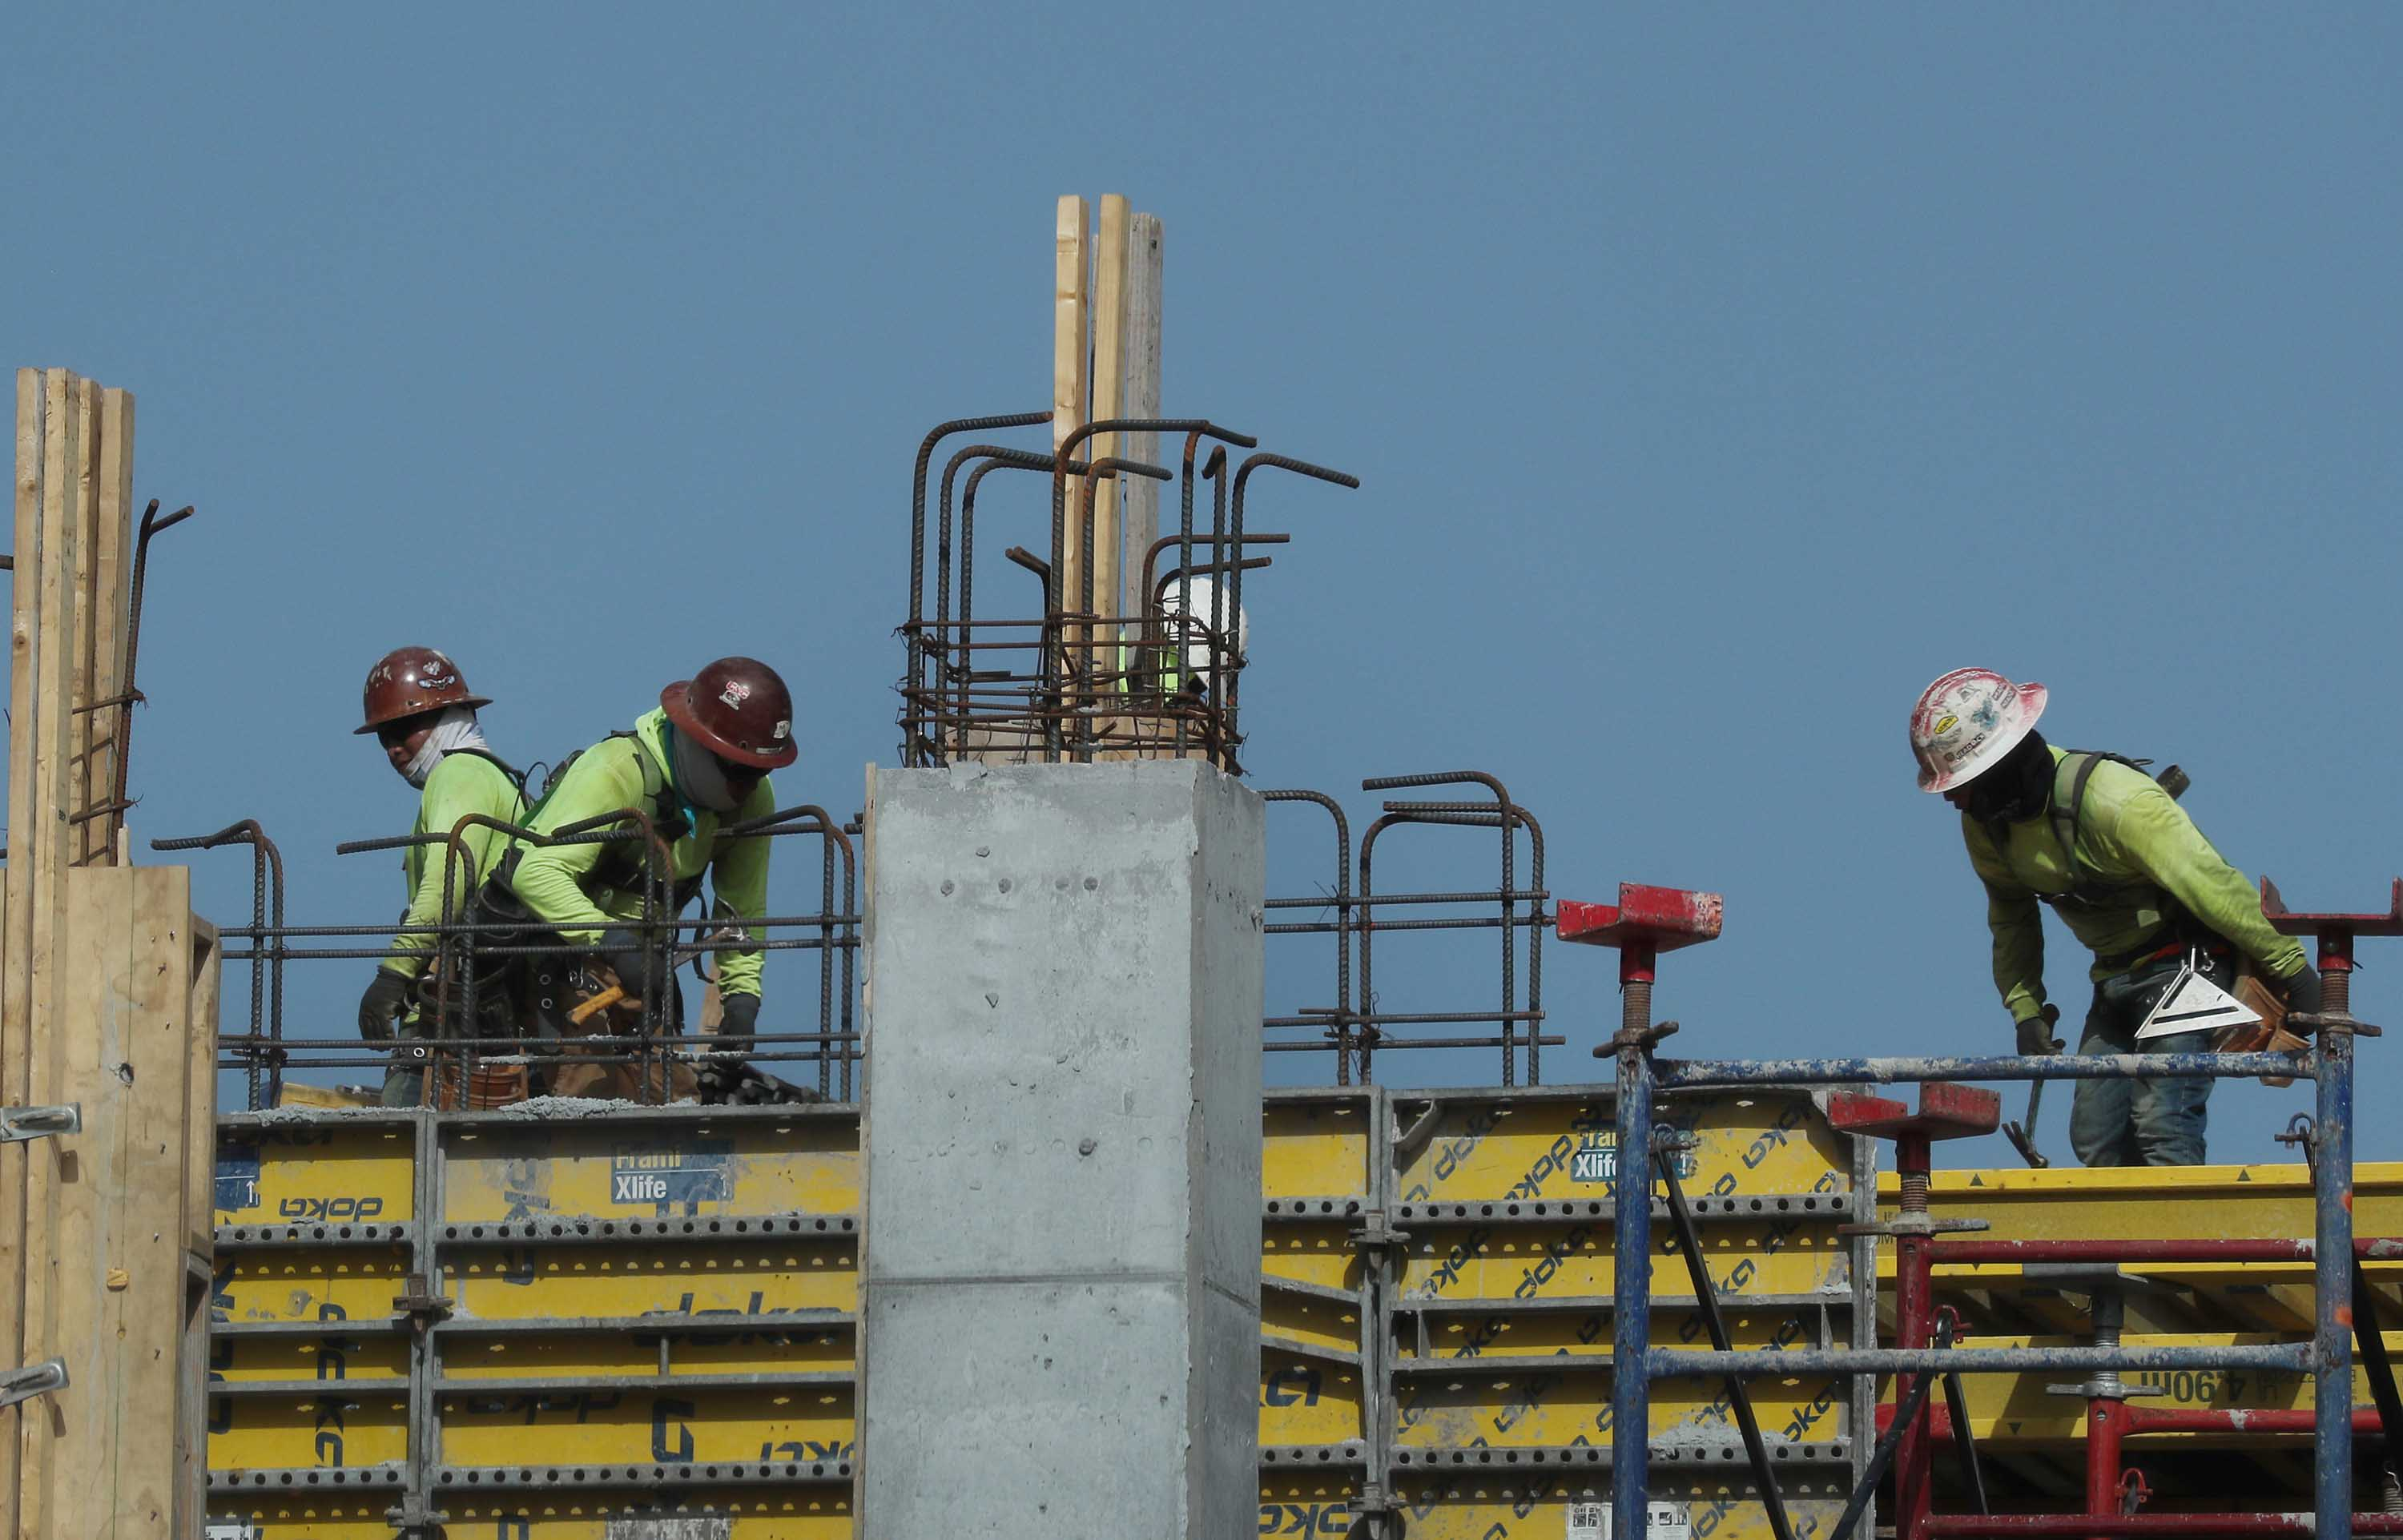 Construction workers are seen on a job site in Miami, Florida on September 4.